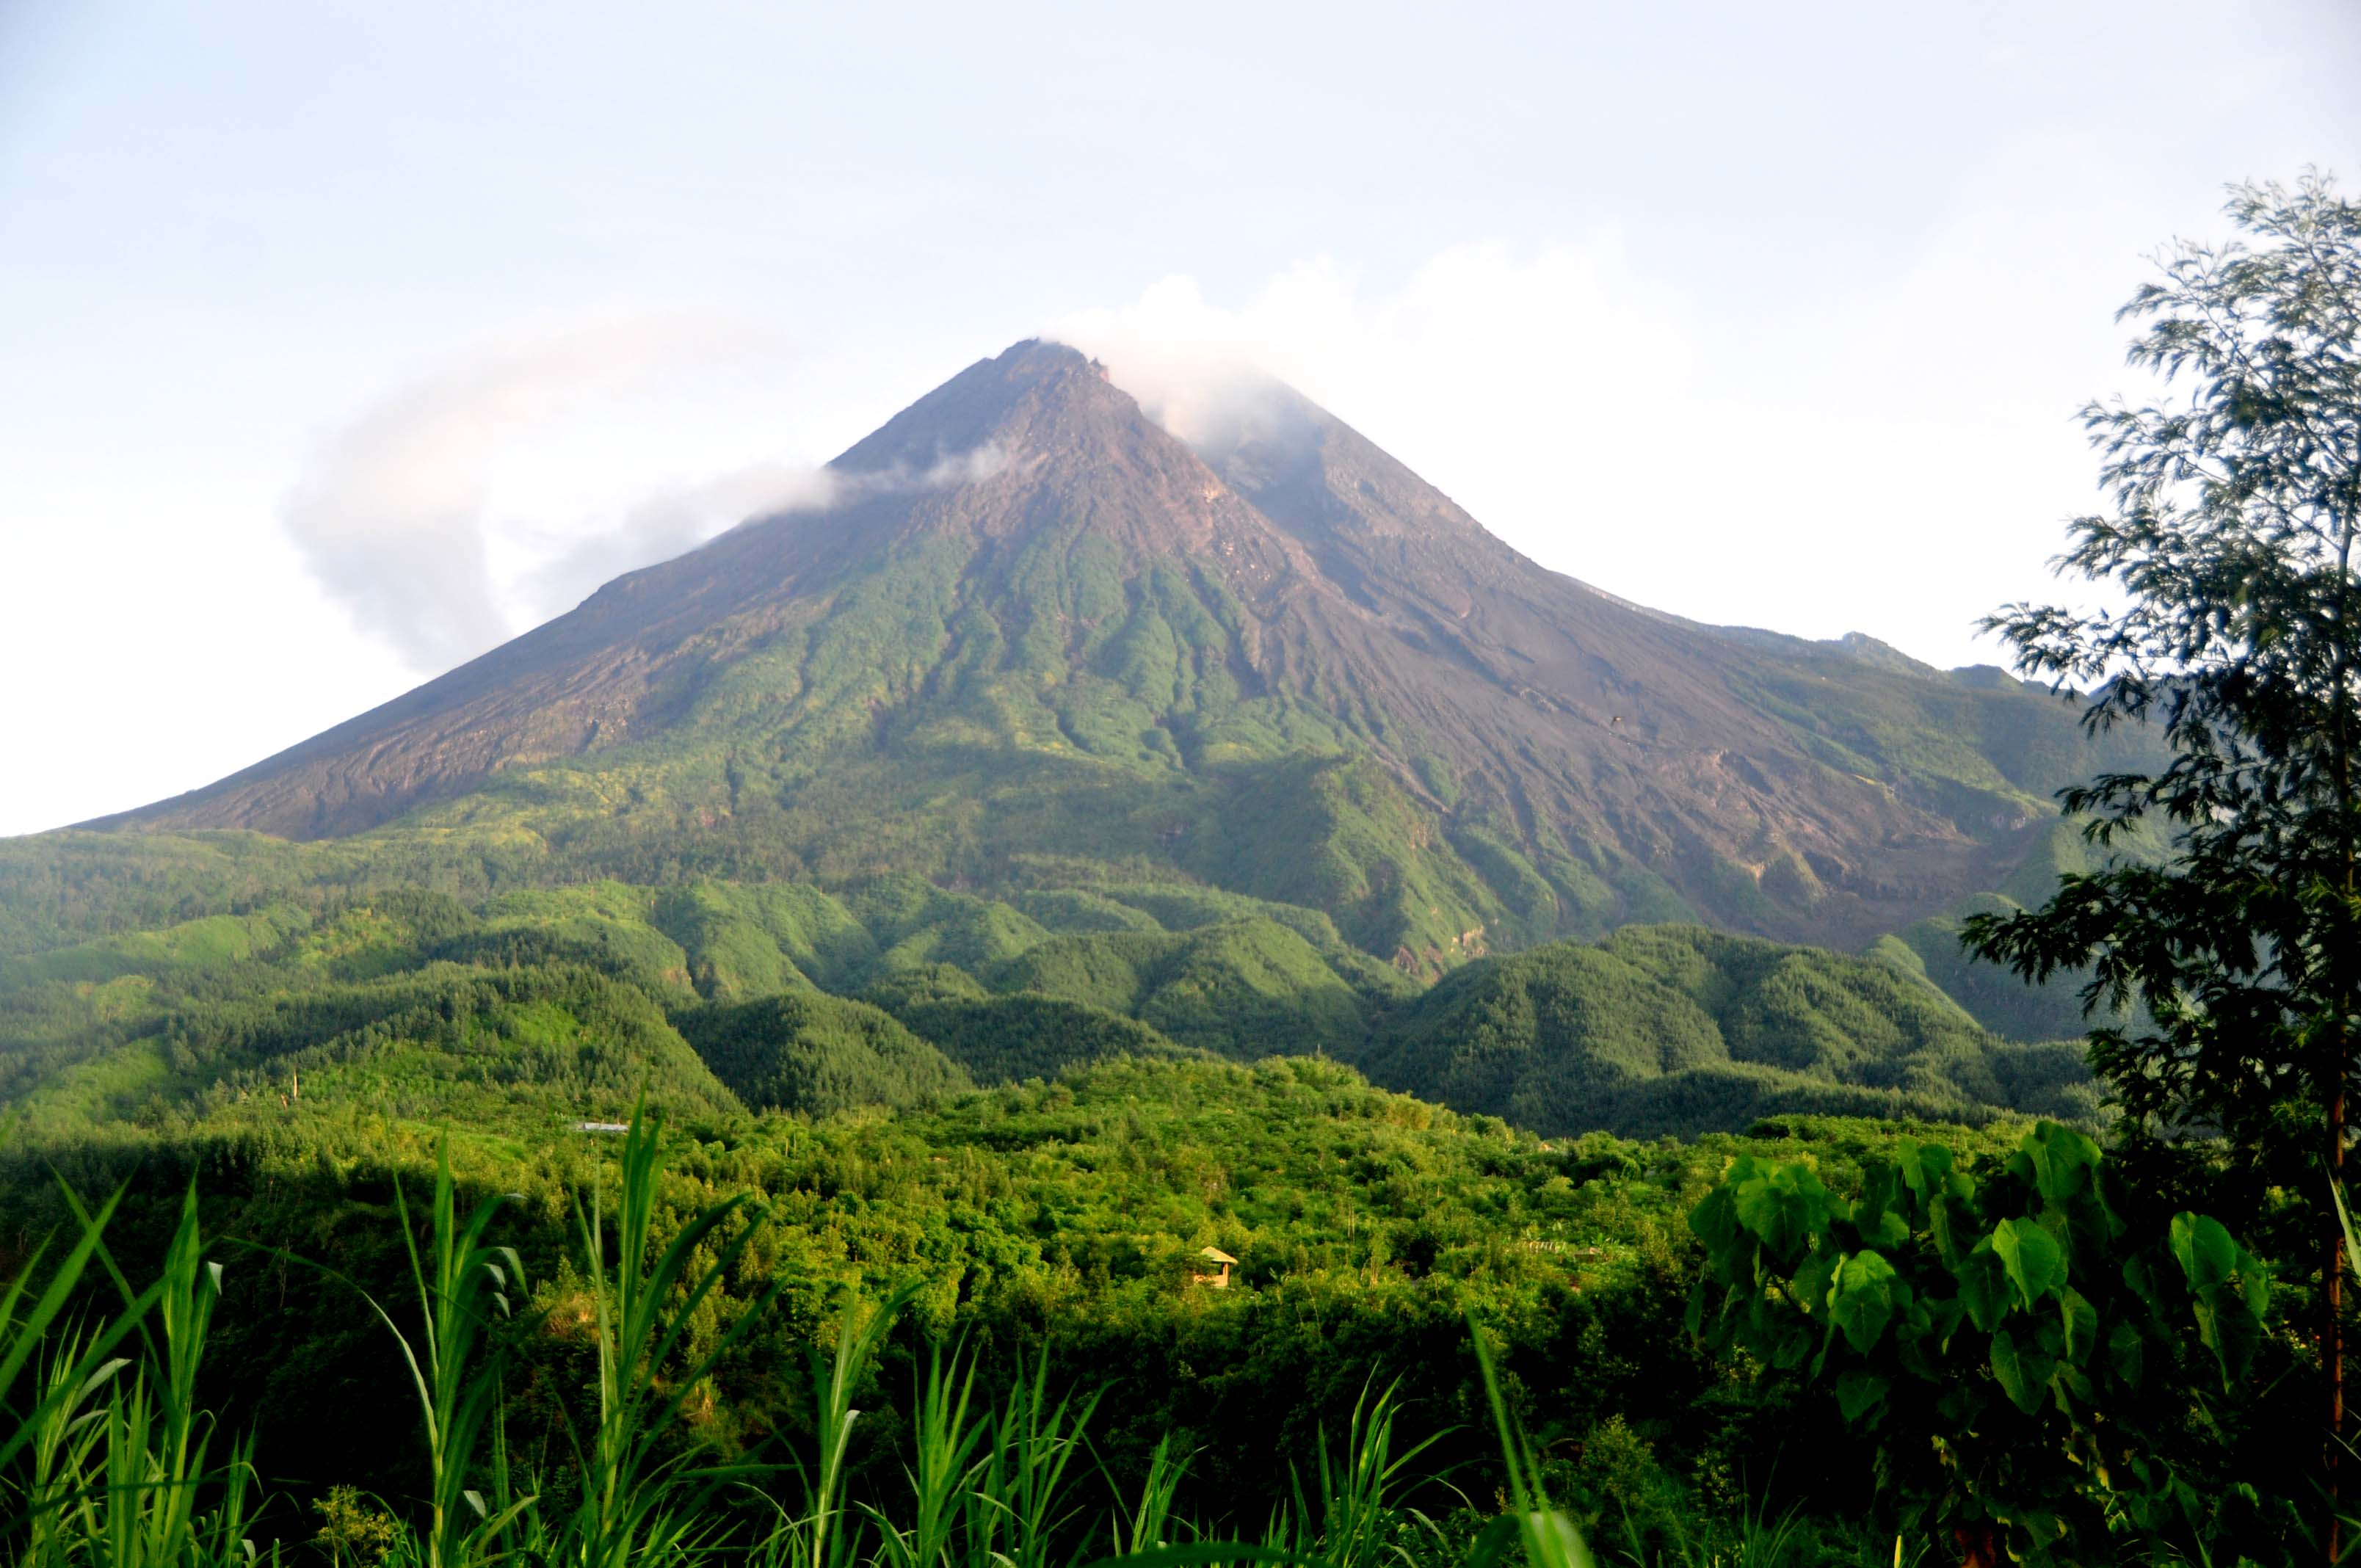 how tall is mount merapi